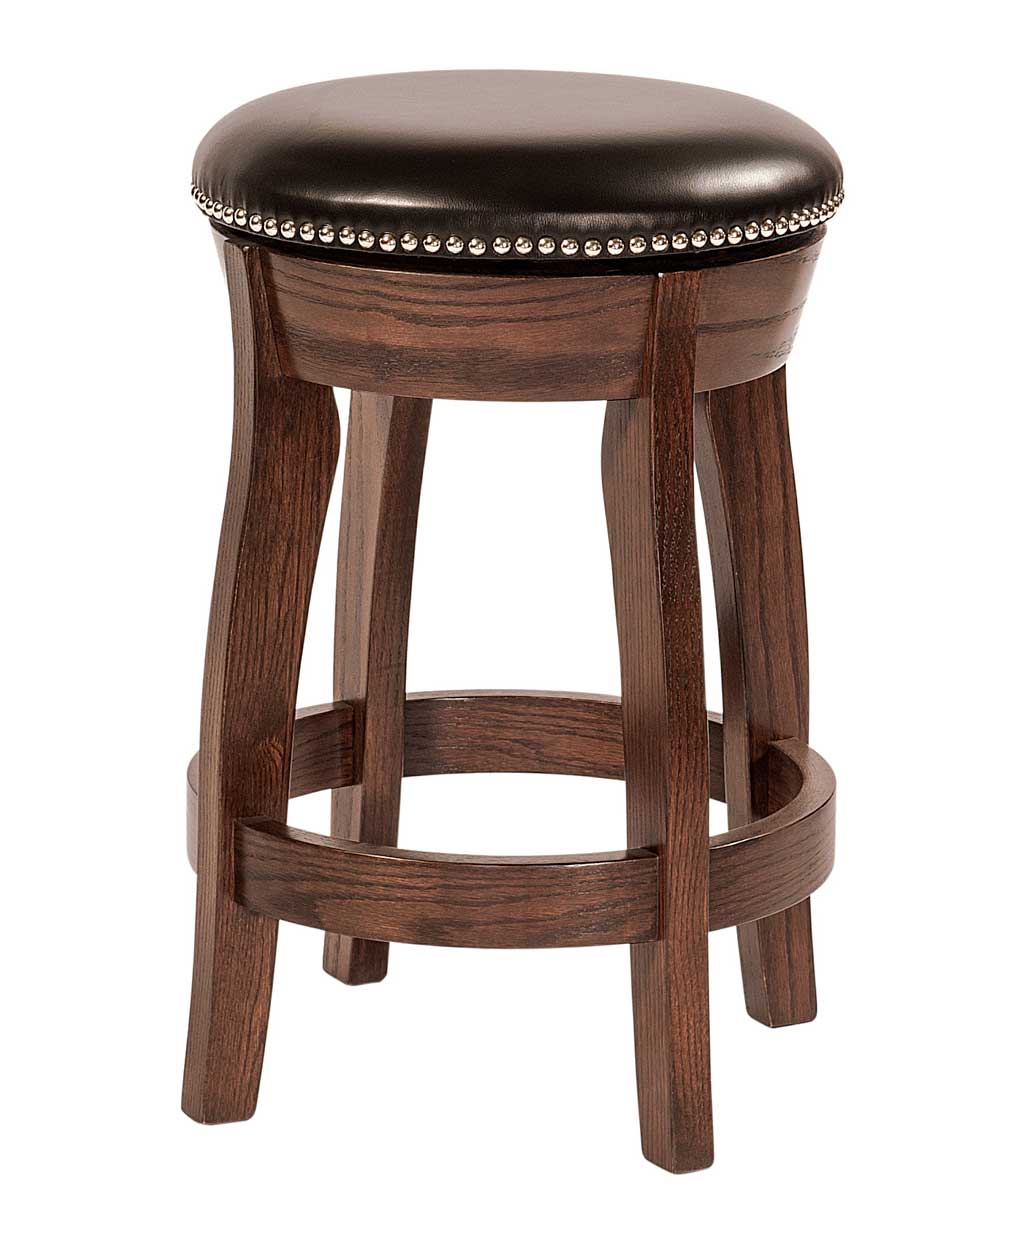 dillon bar stool amish direct furniture. Black Bedroom Furniture Sets. Home Design Ideas